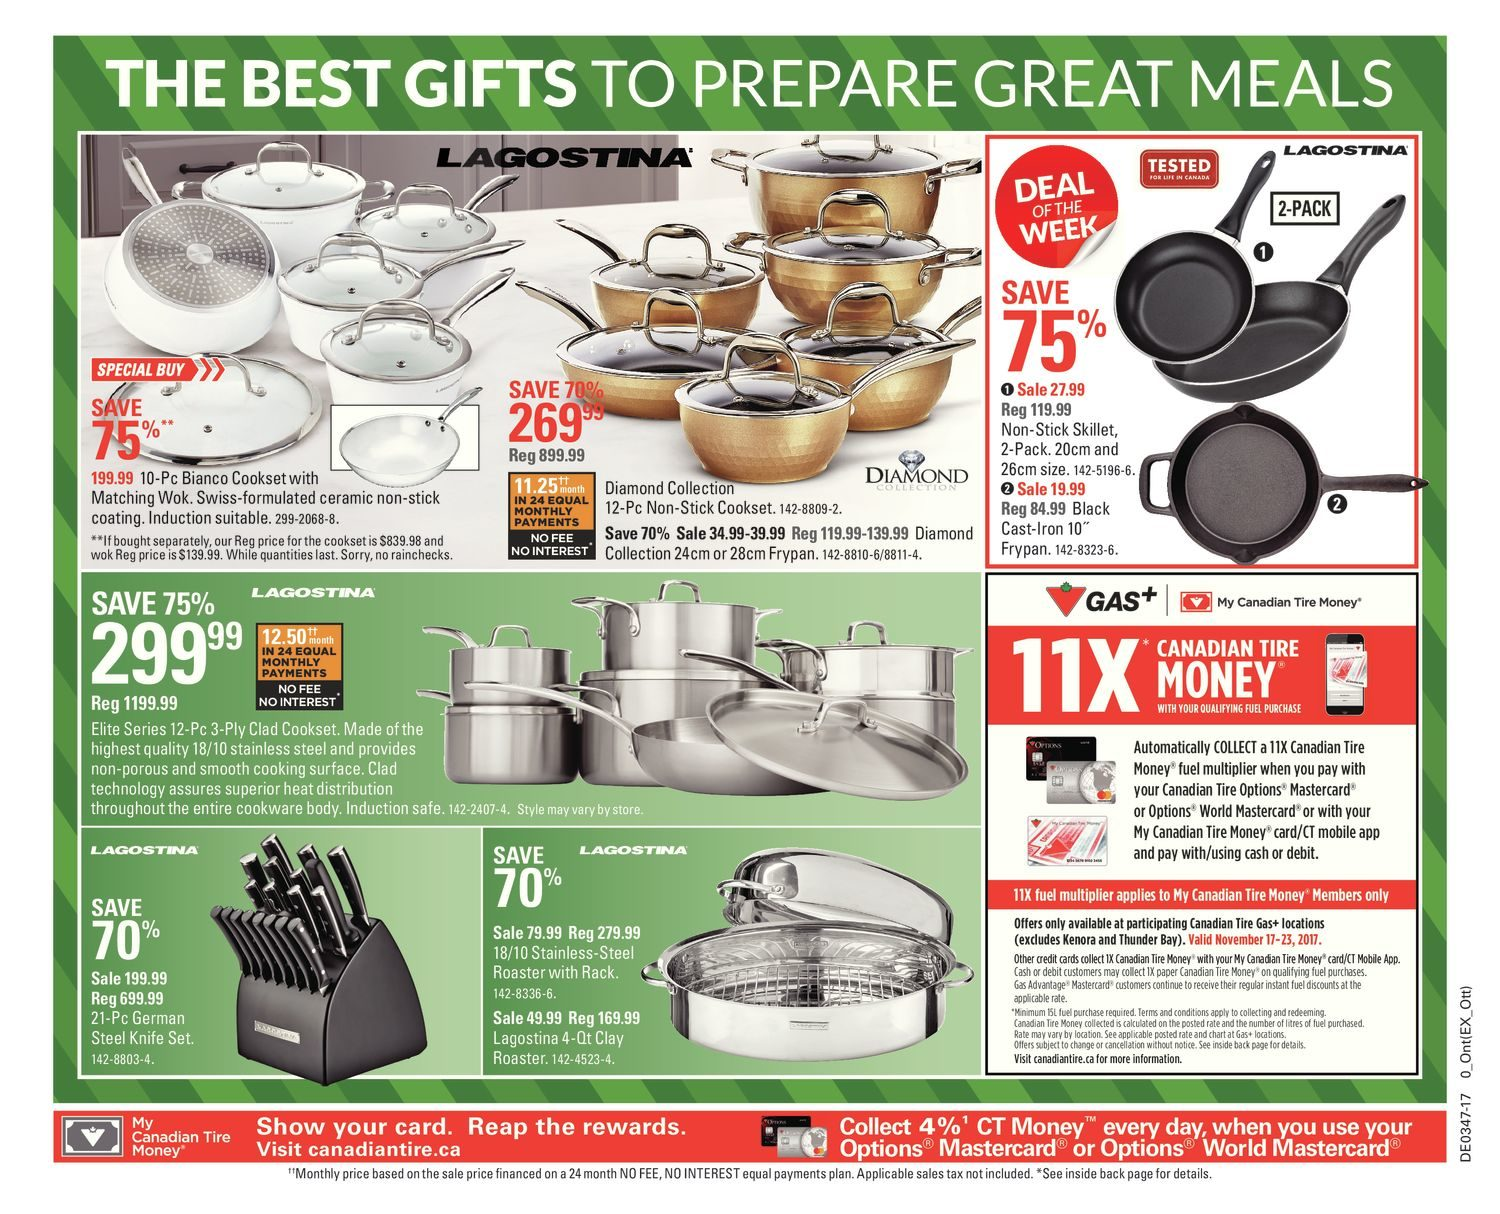 Canadian Tire Weekly Flyer Celebrate With Joy Nov 17 Philips Rice Cooker Hd 3118 32 23